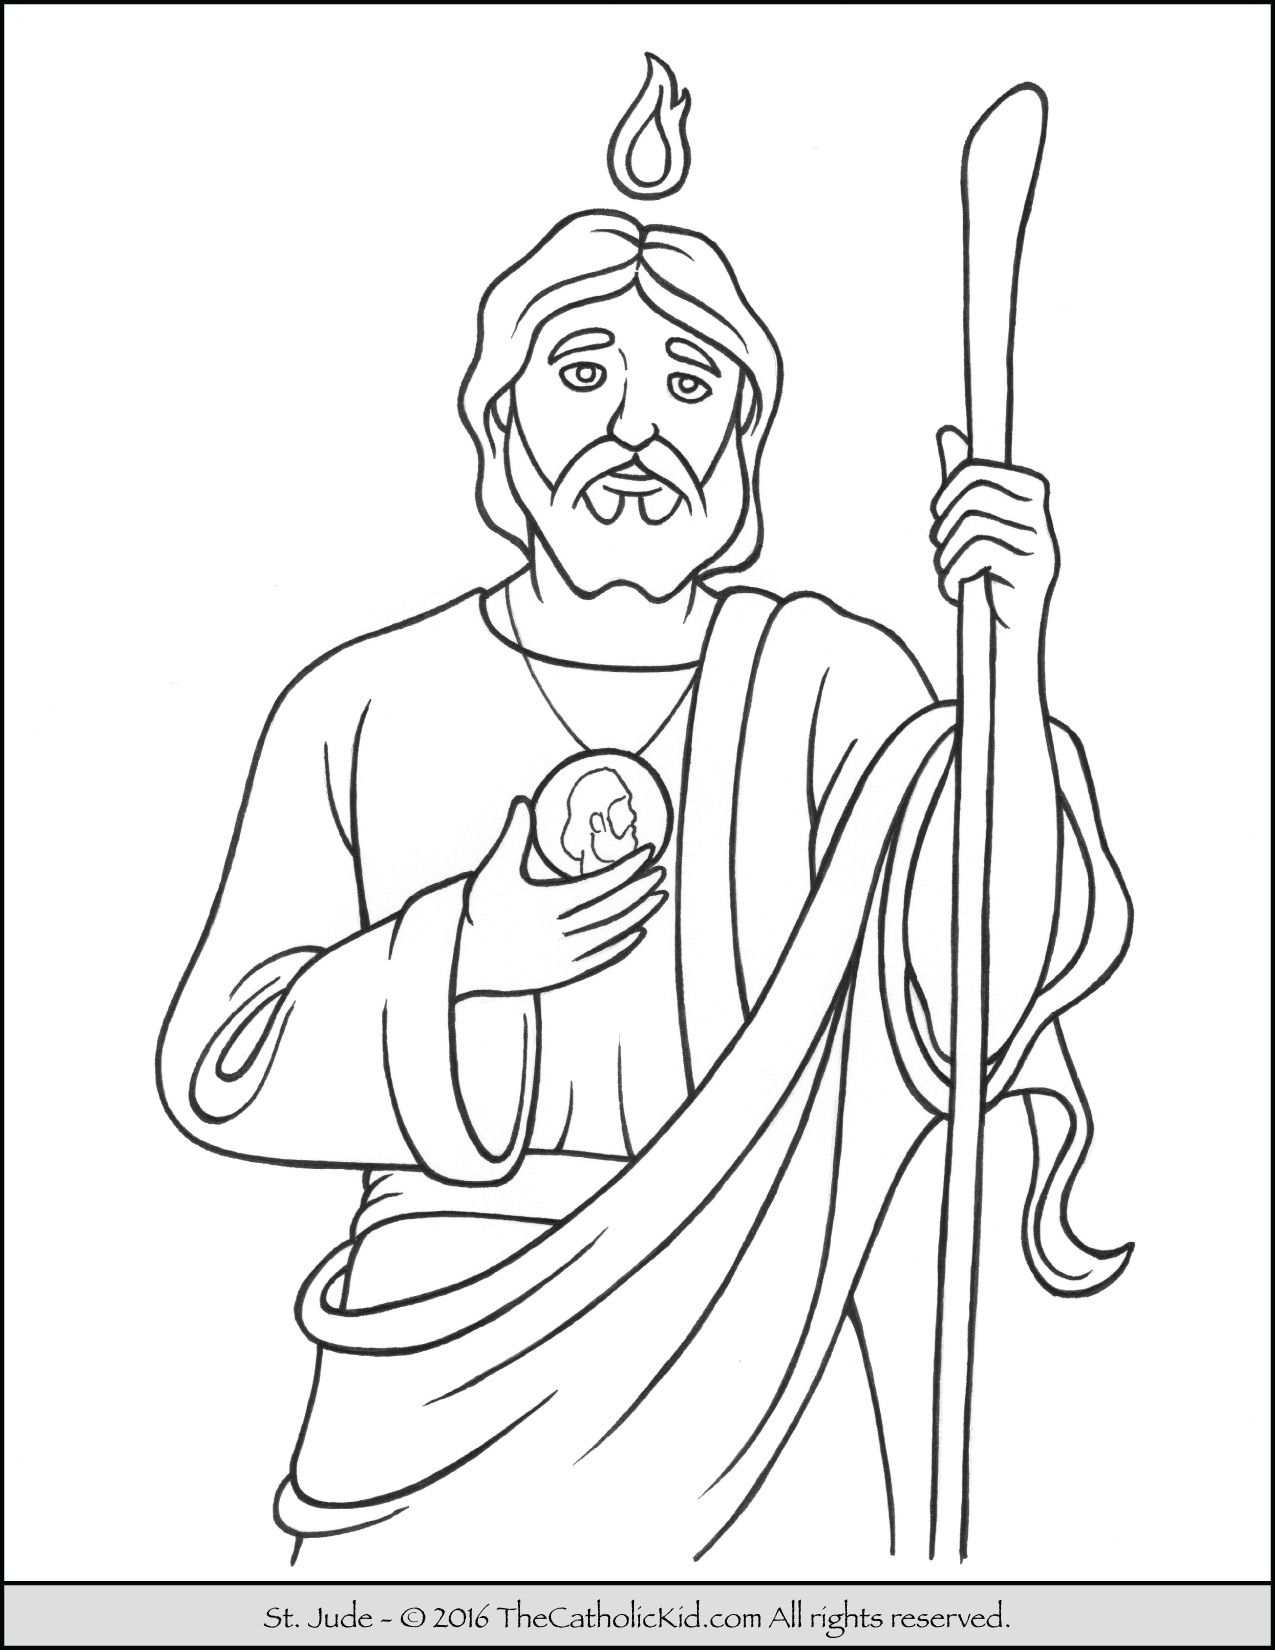 Saint Jude Coloring Page The Catholic Kid Catholic Saints